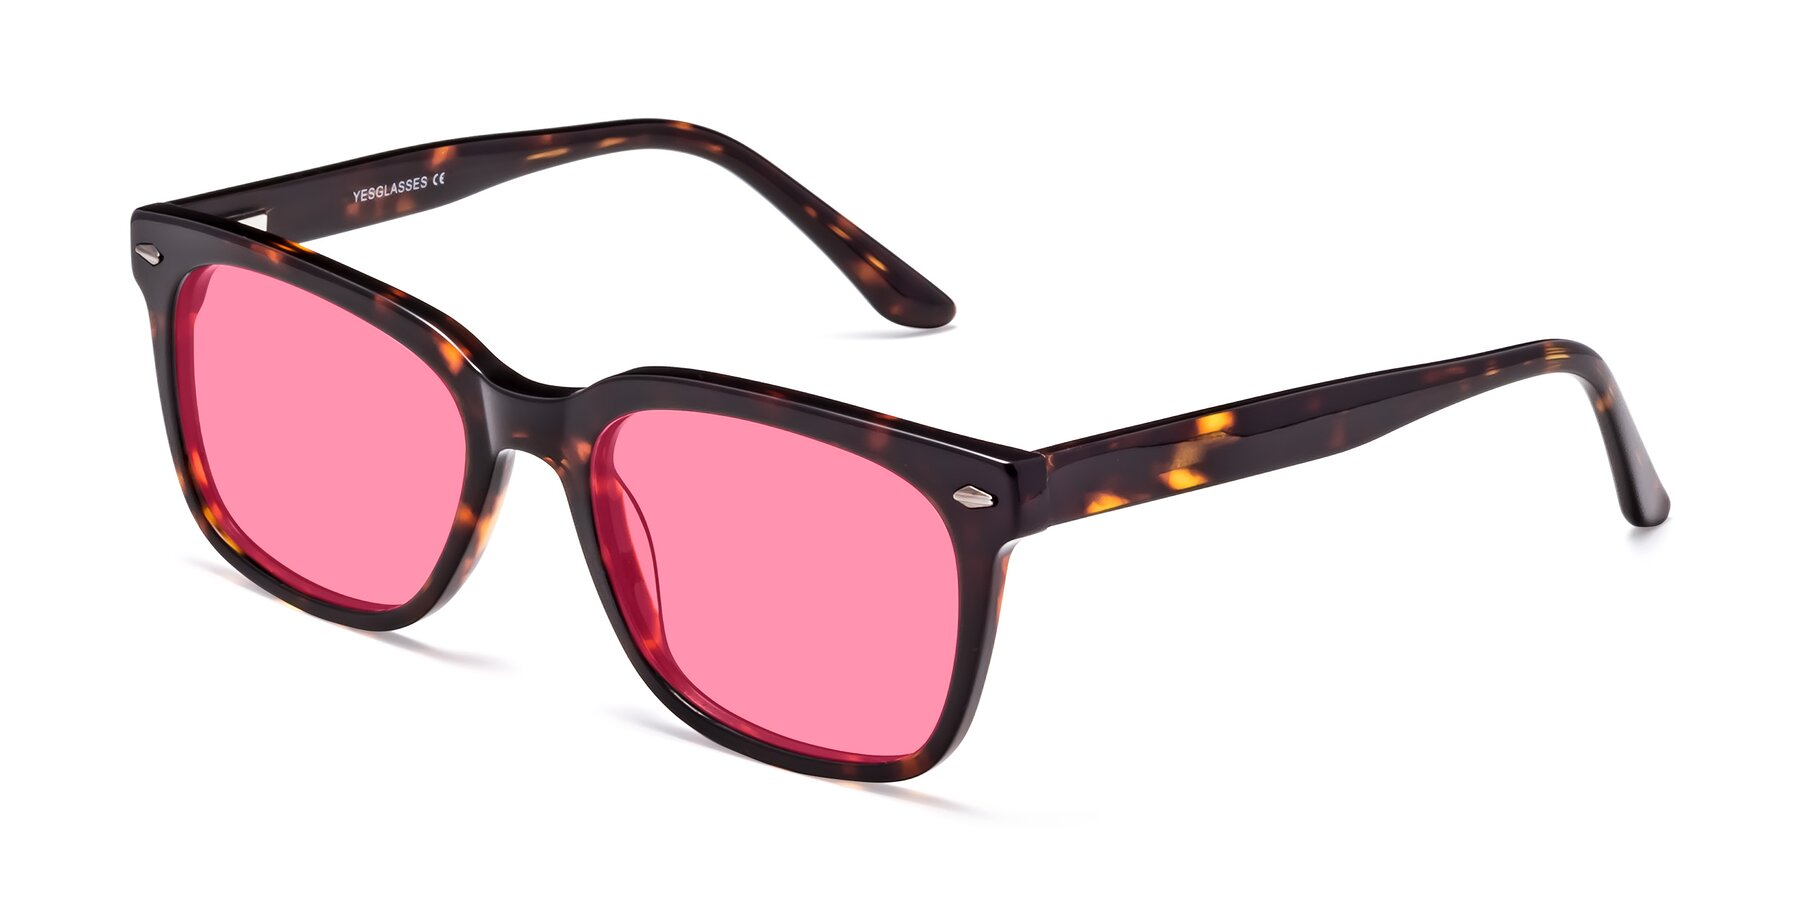 Angle of 1052 in Tortoise with Pink Tinted Lenses